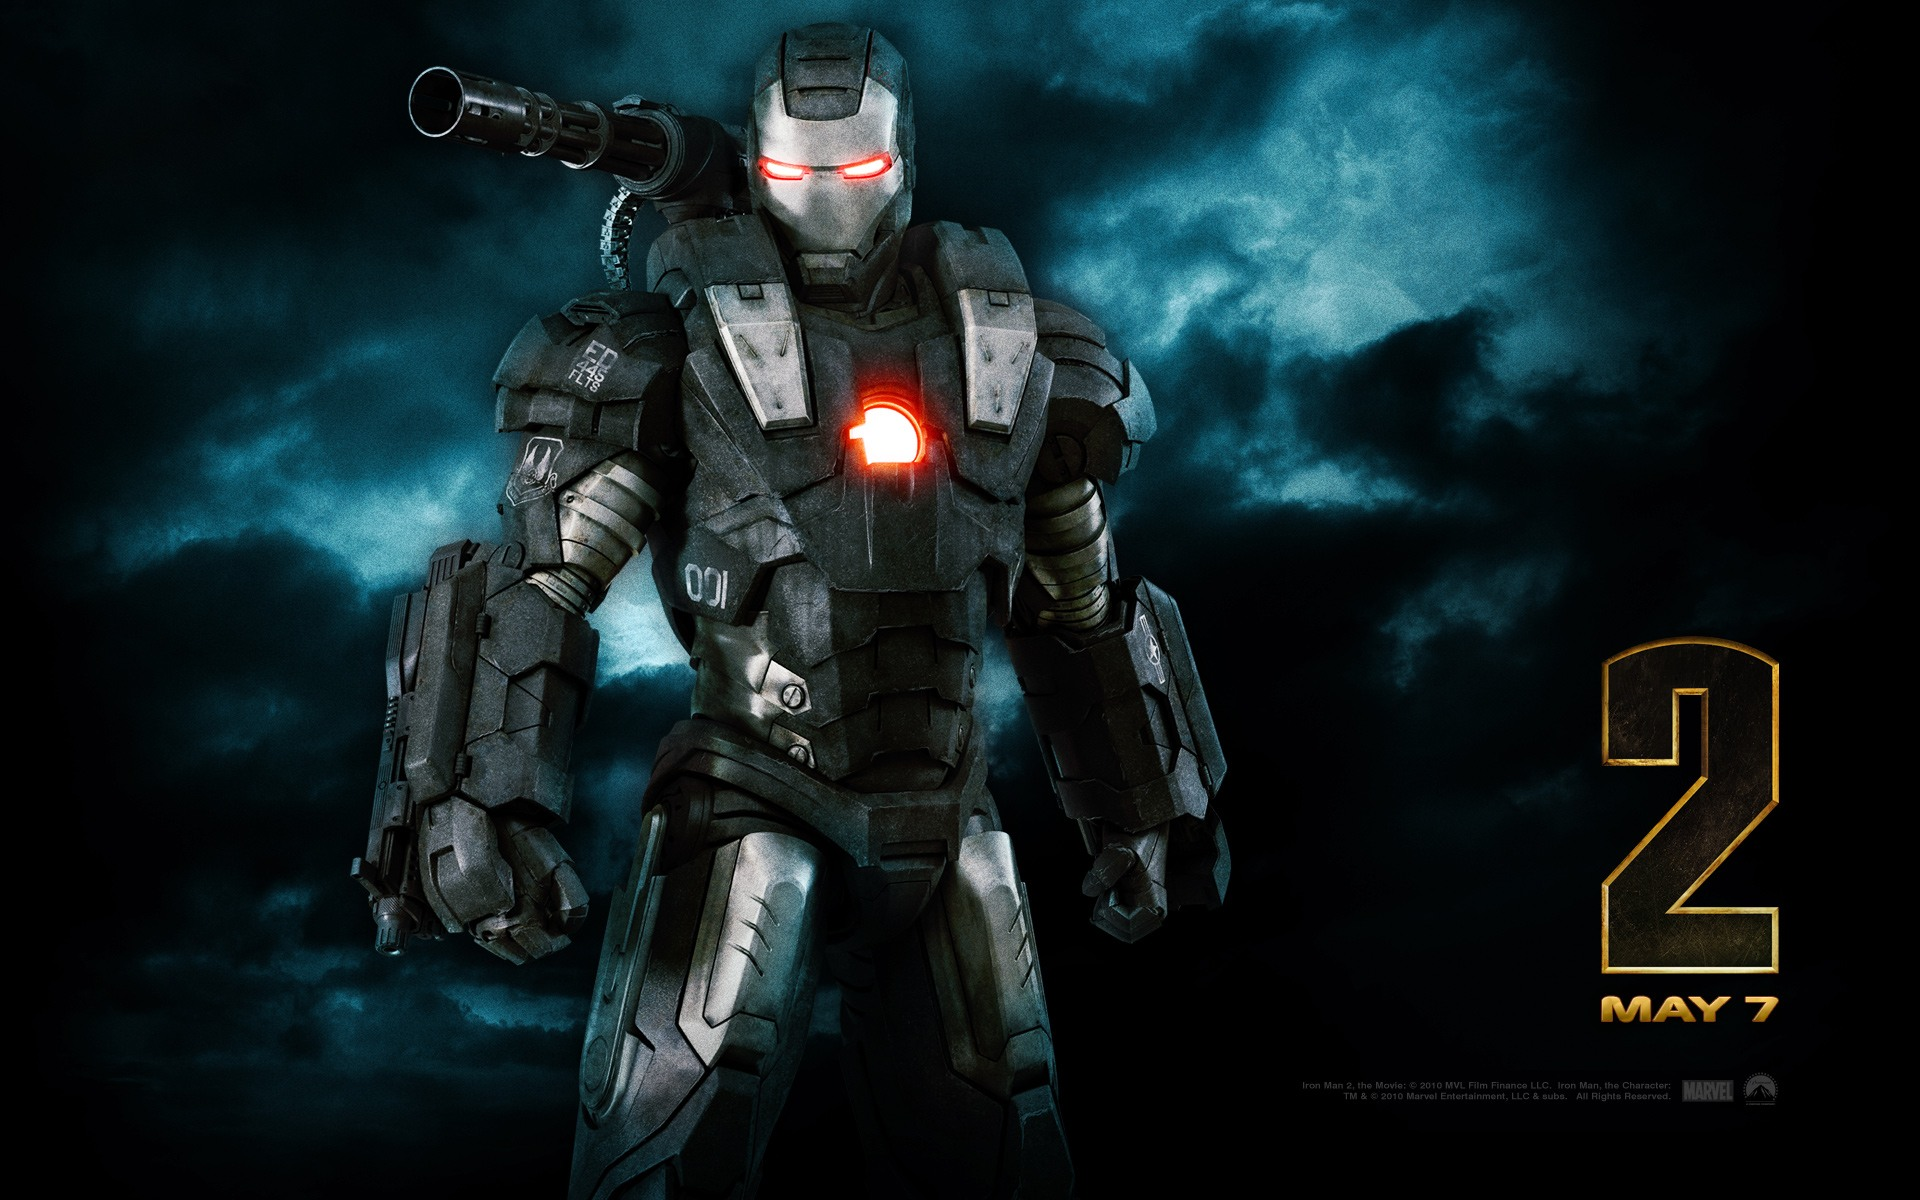 Iron man war machine wallpaper Wallpaper Wide HD 1920x1200